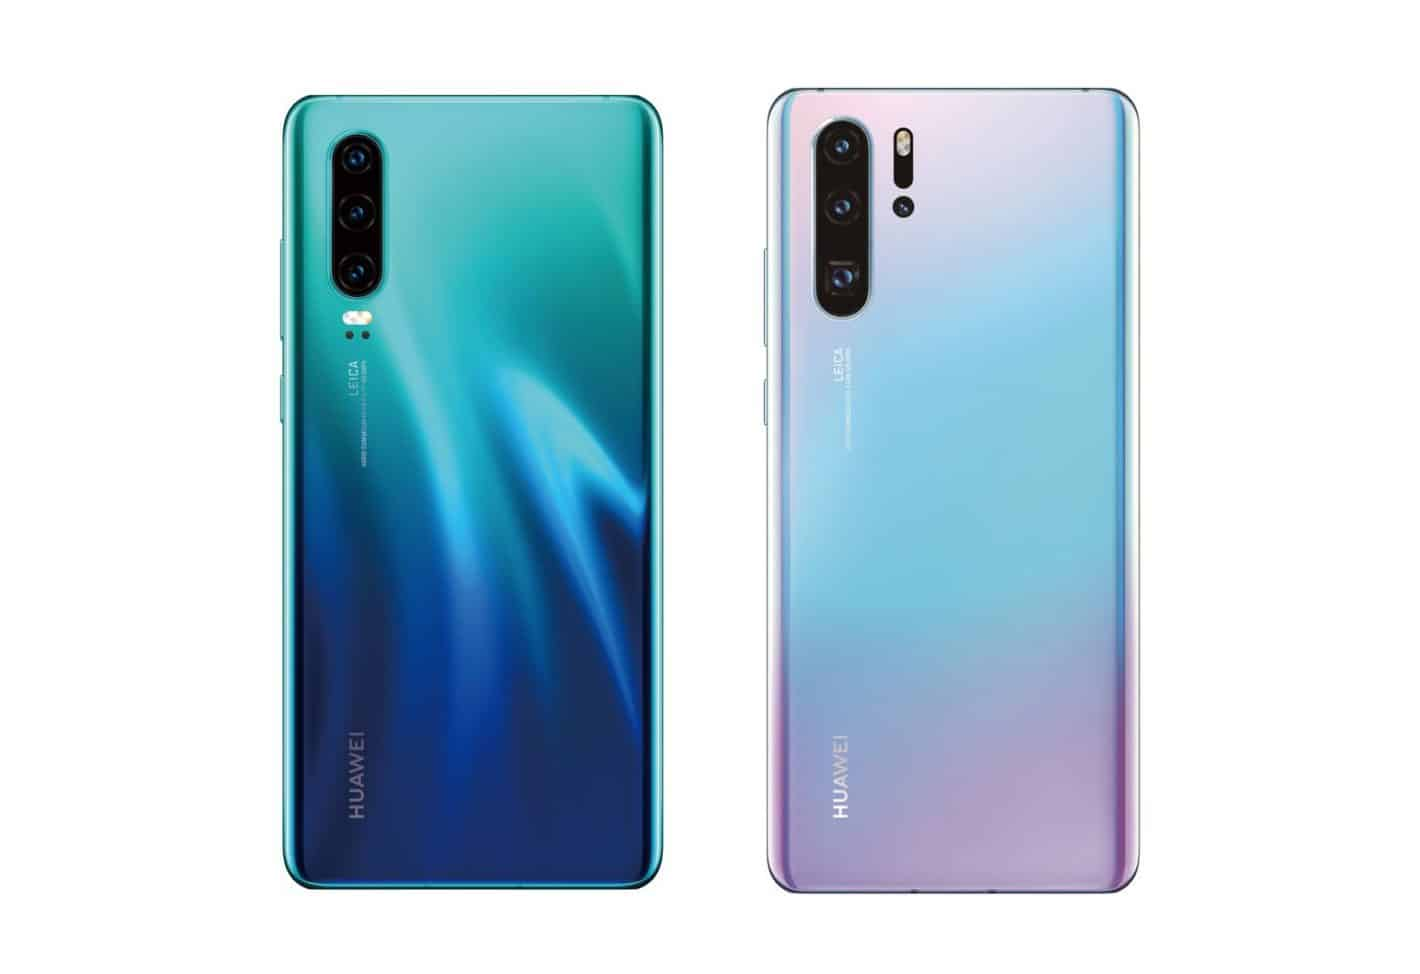 Huawei P30 Series Wallpapers Themes Available To Download